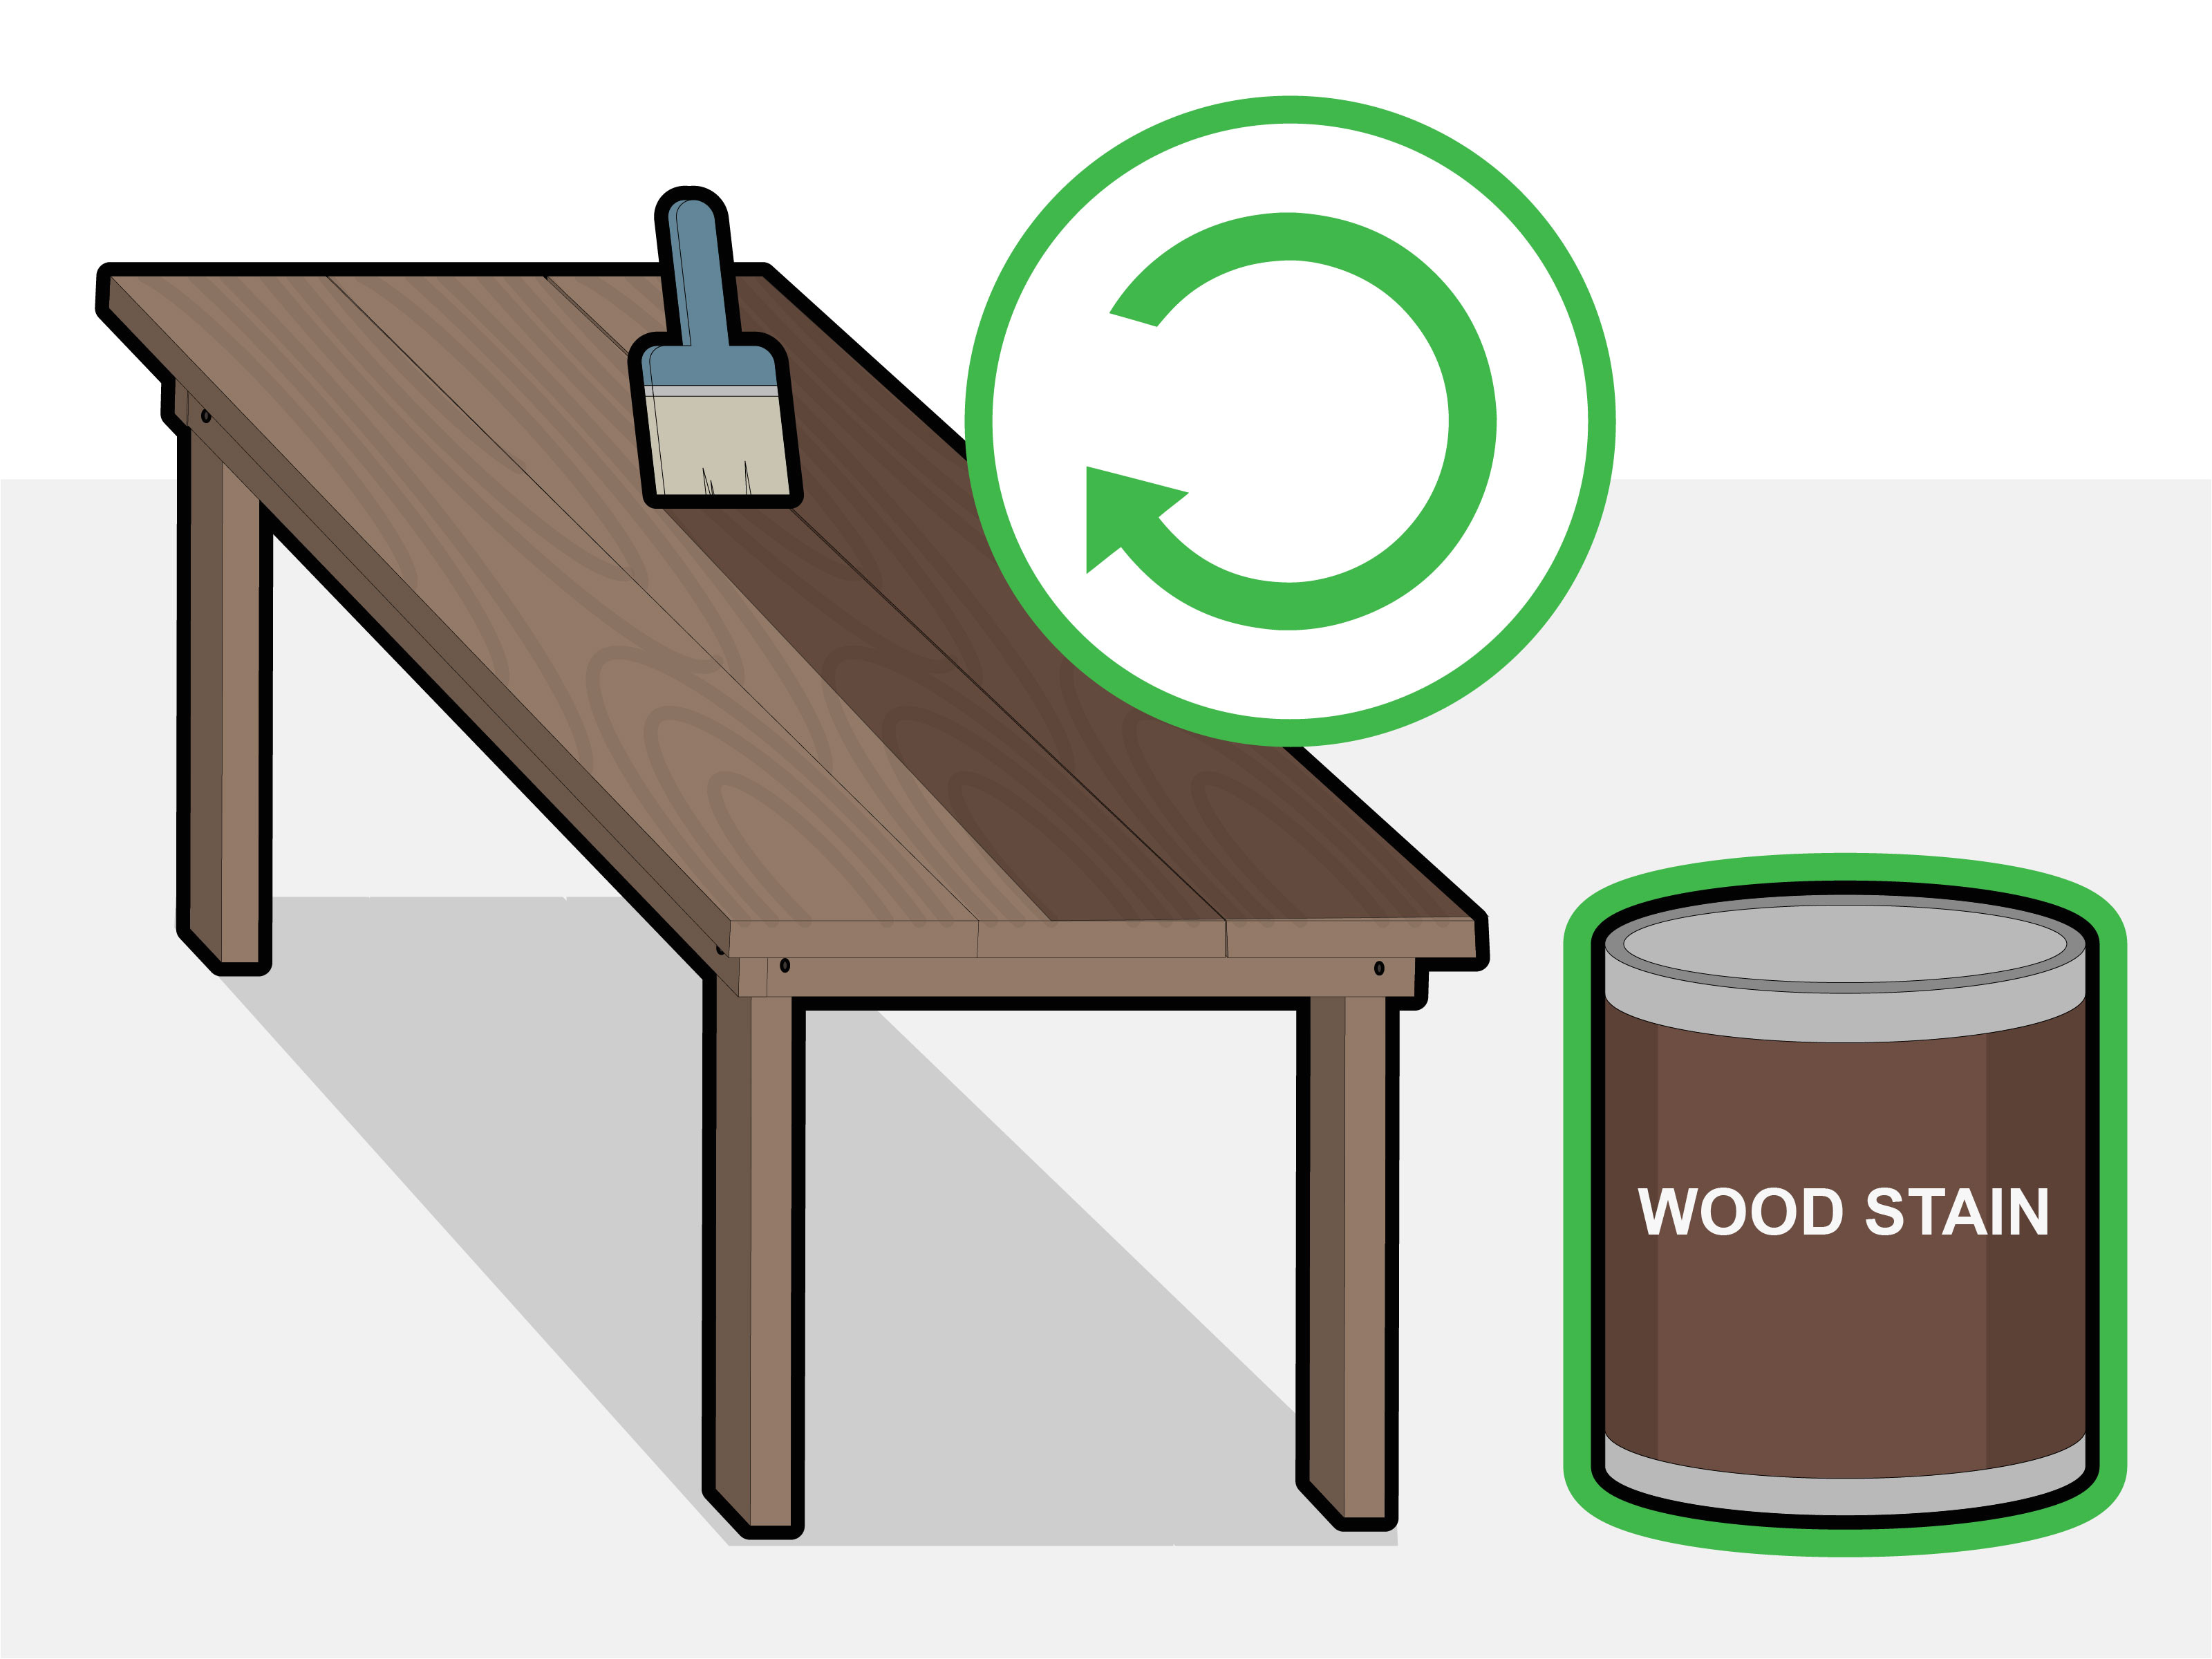 List Of Materials Used to Make Furniture the Easiest Way to Make A Table Wikihow